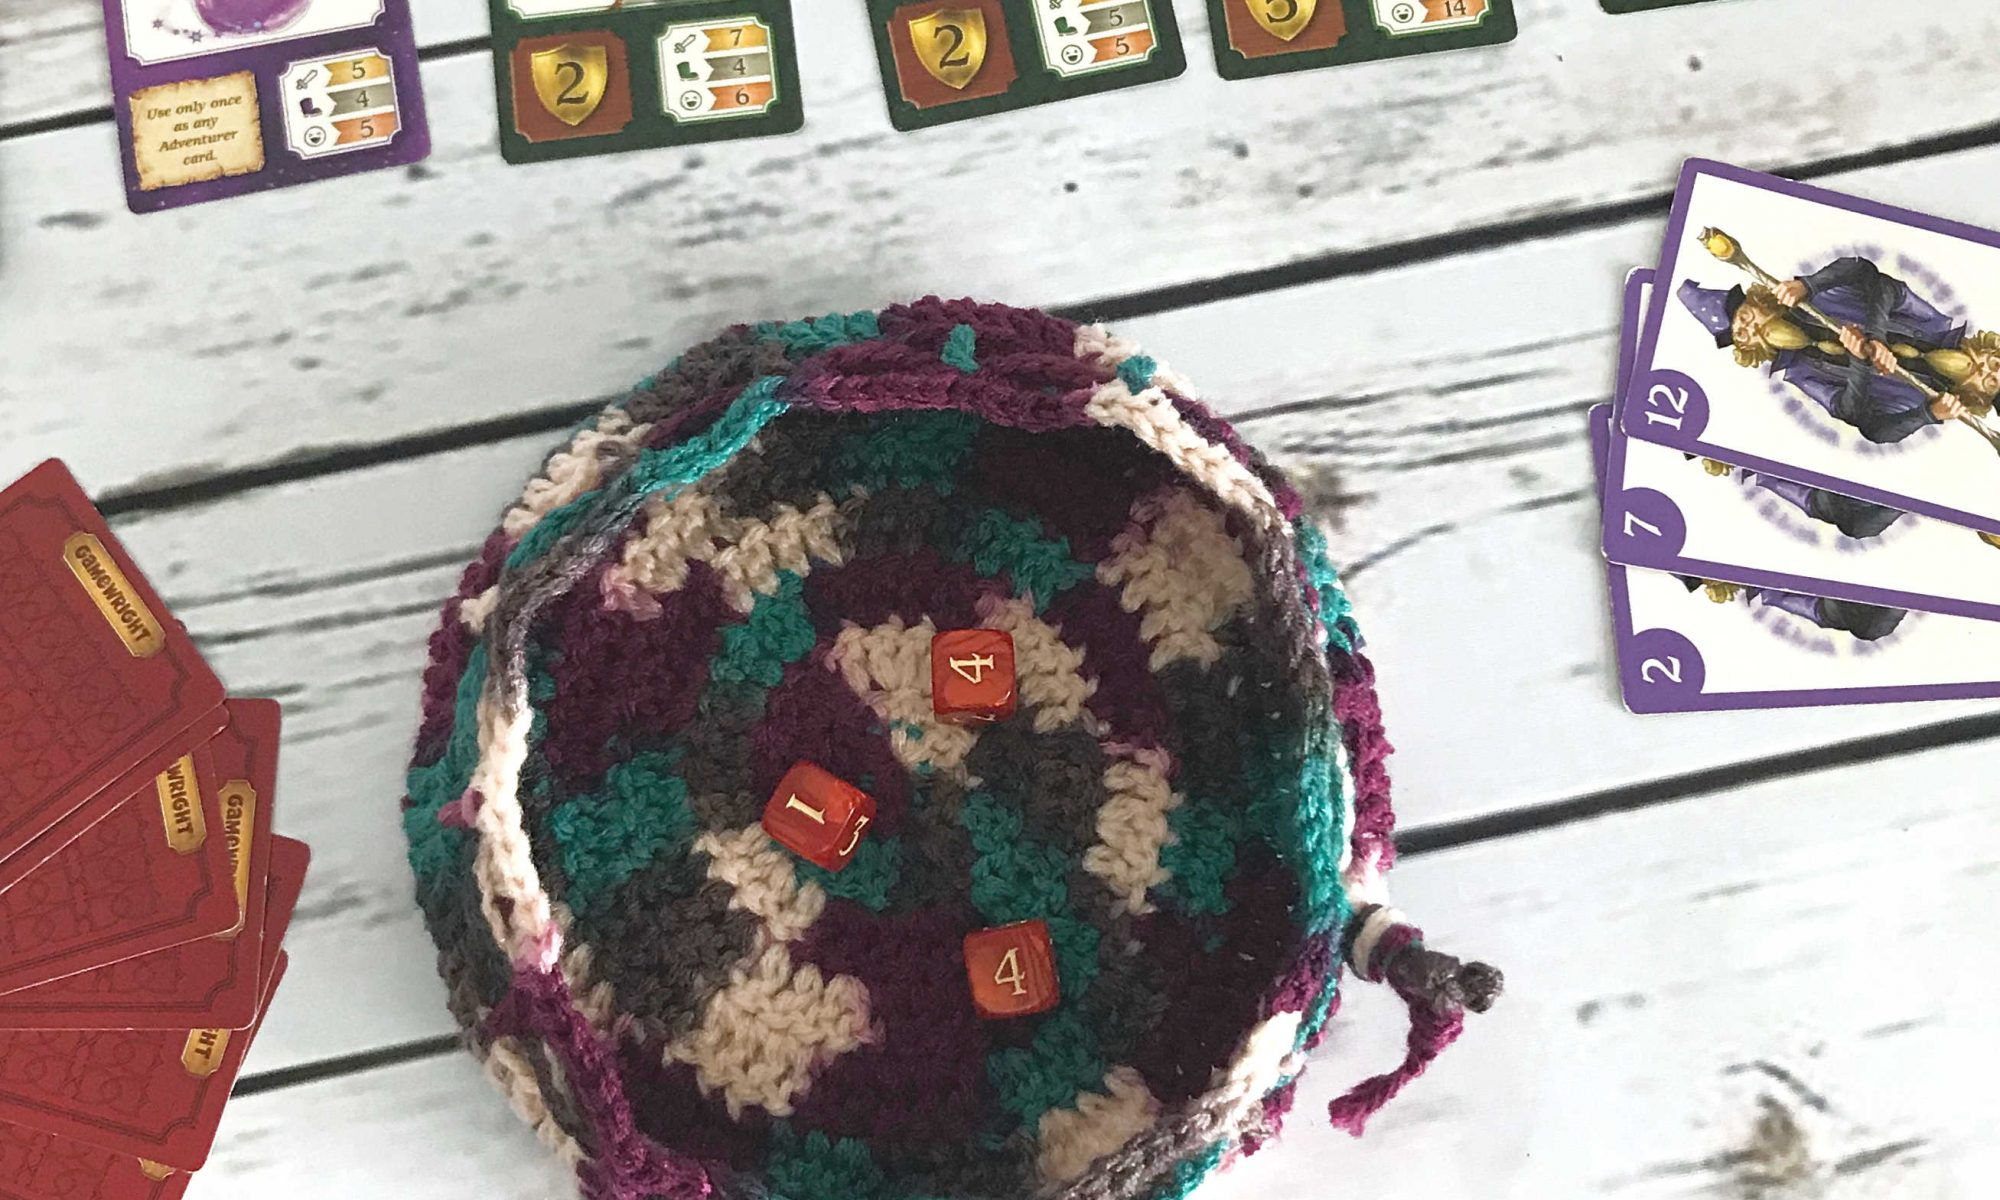 DC Dice Bag - Free Crochet Pattern - Drawstring Bag - Easy Crochet Pattern - Dice bag - Beginner Crochet - www.greenfoxfarmsdesigns.com